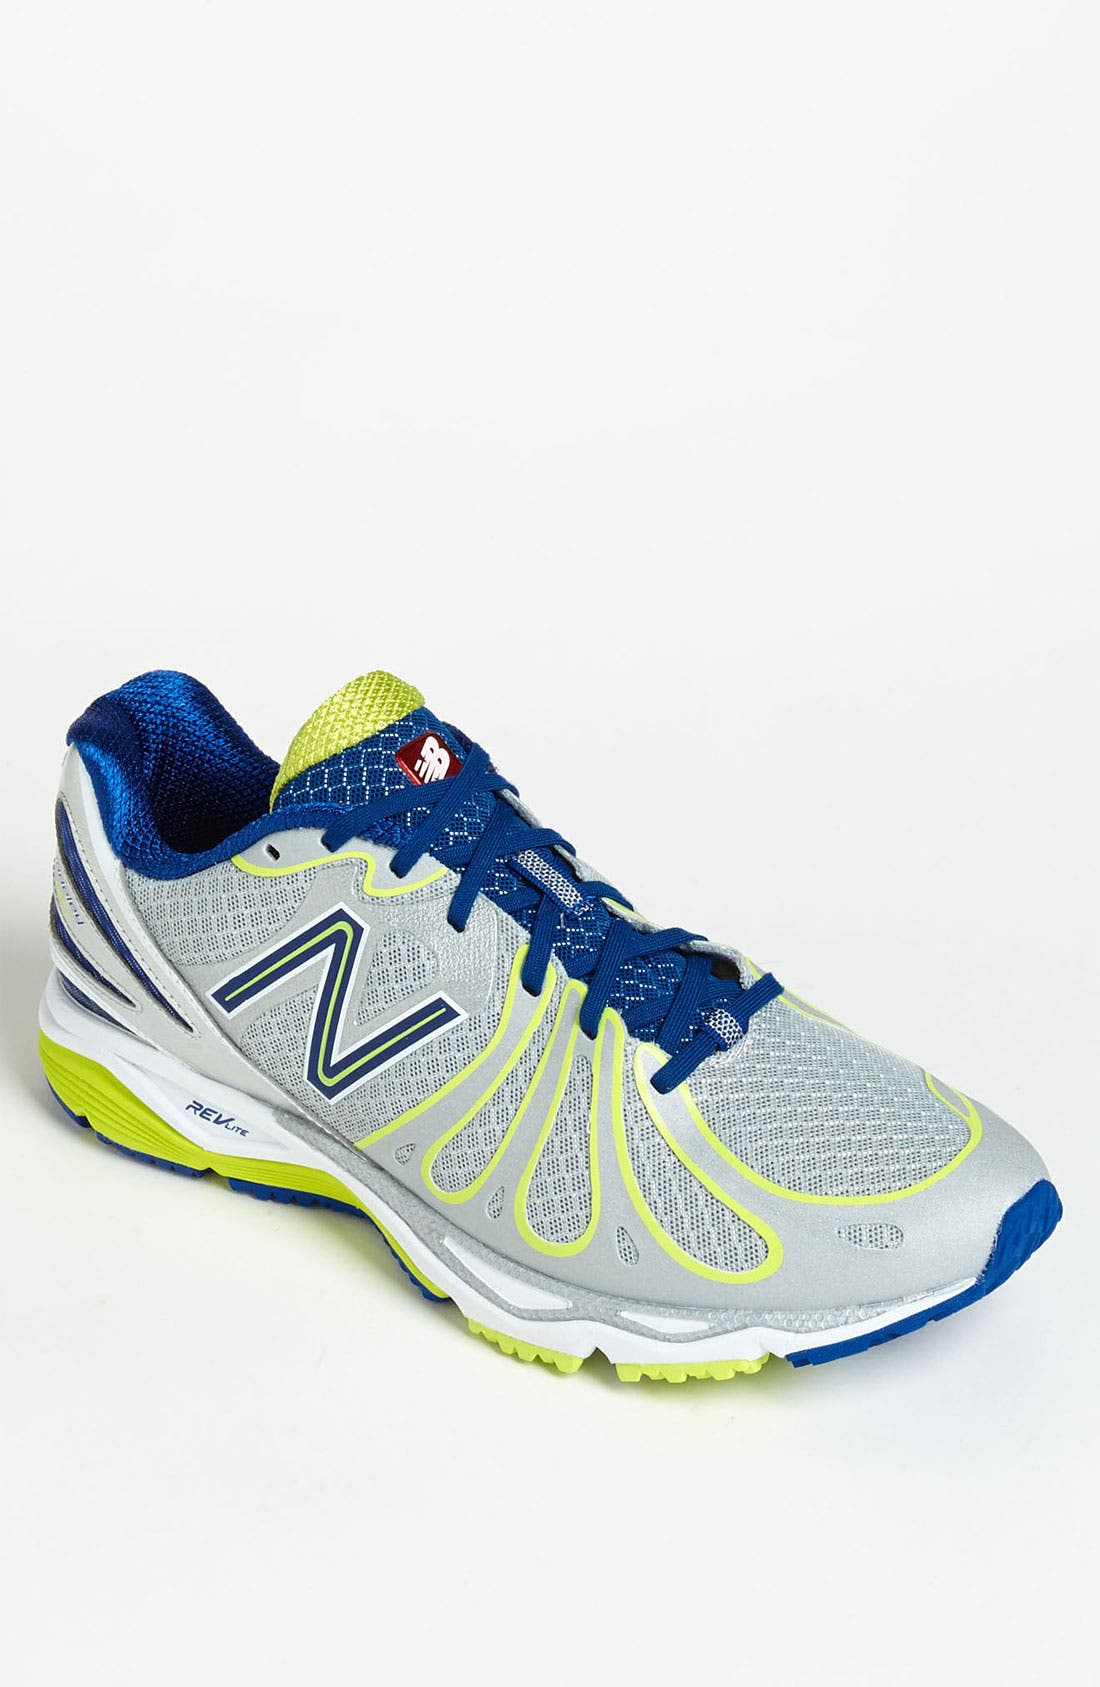 Main Image - New Balance '890v3' Running Shoe (Men) (Online Only)